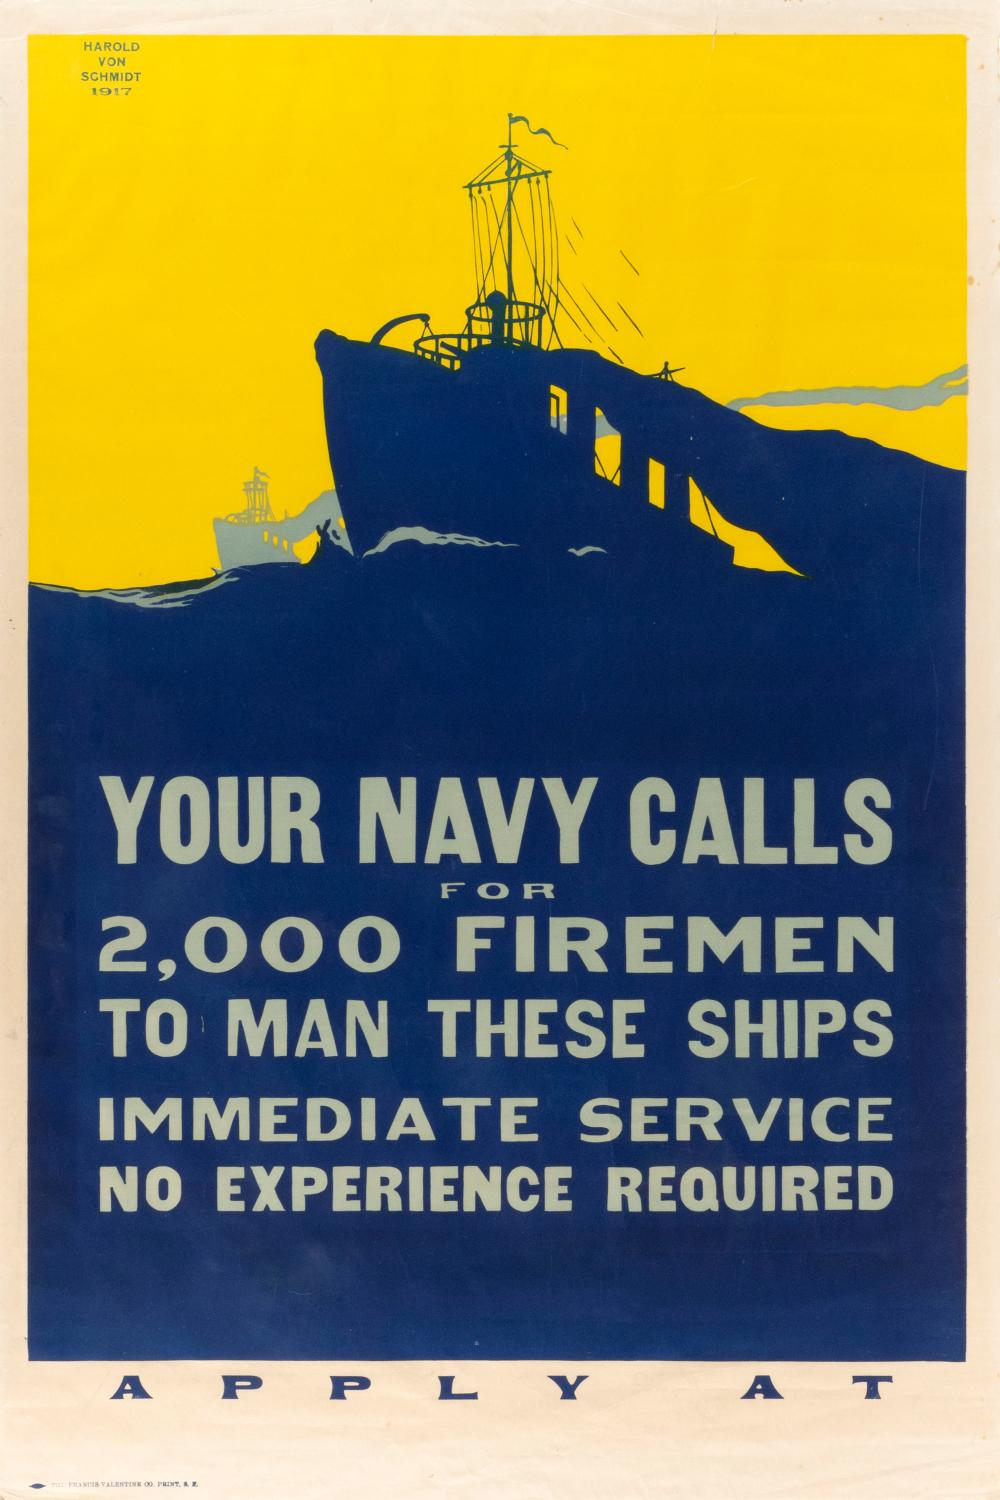 """YOUR NAVY CALLS FOR 2,000 FIREMEN ..."" WORLD WAR I POSTER By Harold Von Schmidt, published by The Francis-Valentine Co. Print, San..."